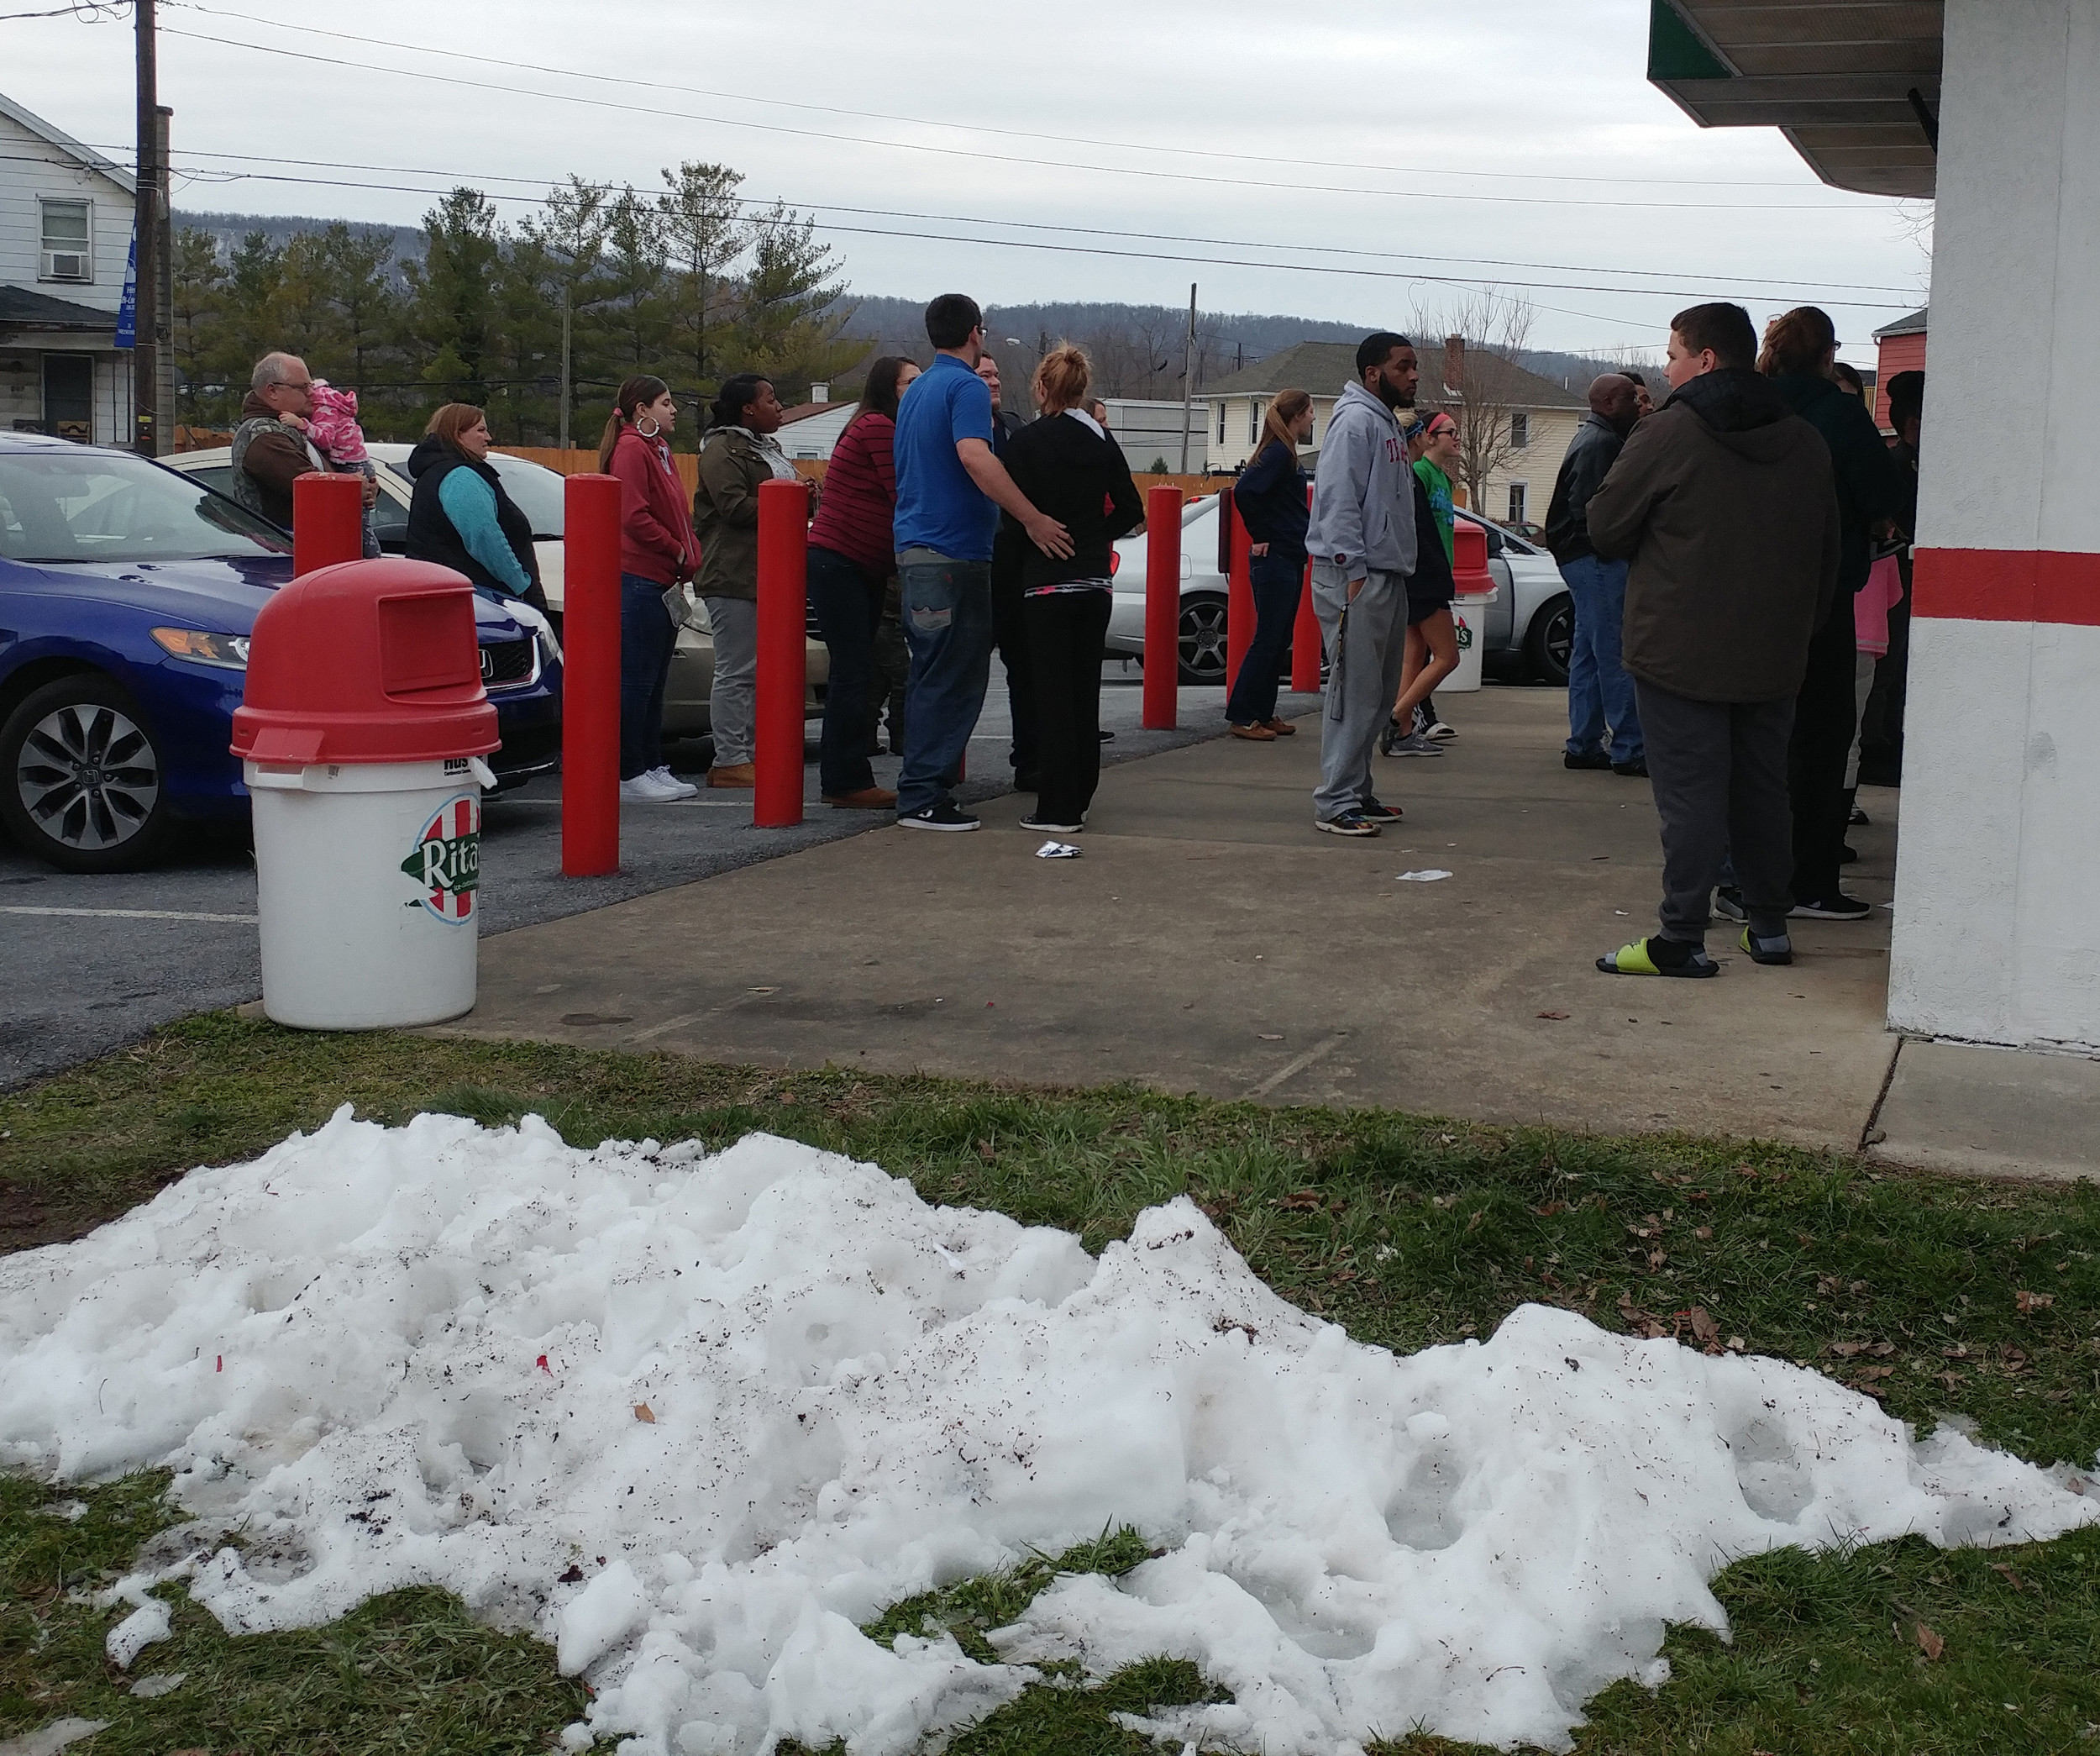 The Highspire Rita's generally gives away between 2,000 and 2,500 free cups of water ice on the opening day of spring.